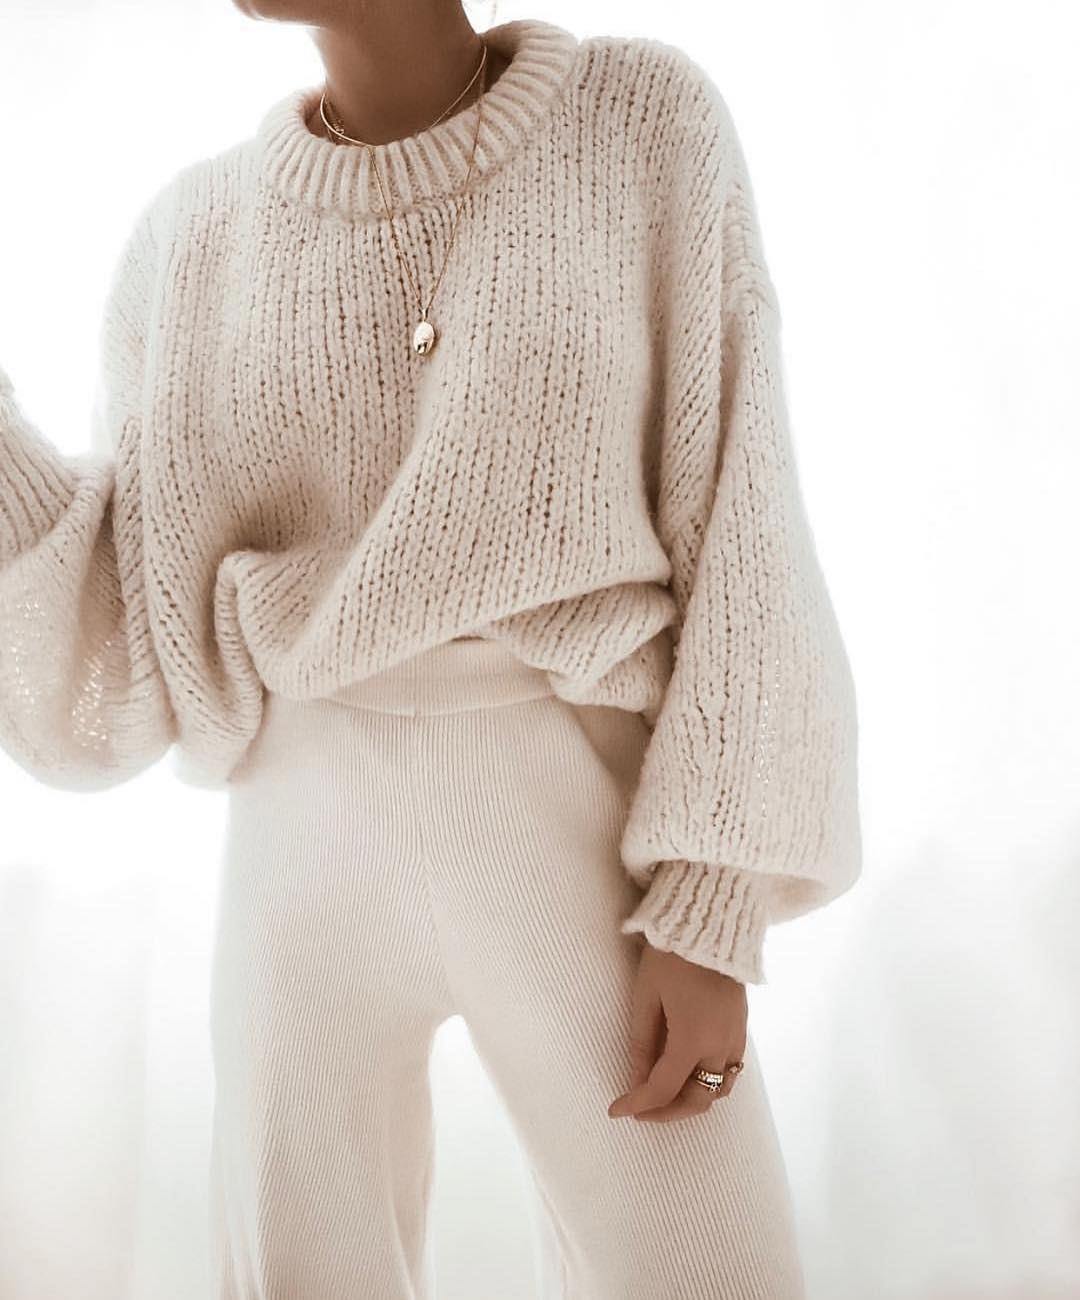 Oversized Sweater And Knitted Wide Pants: Knitwear Must-Haves 2020